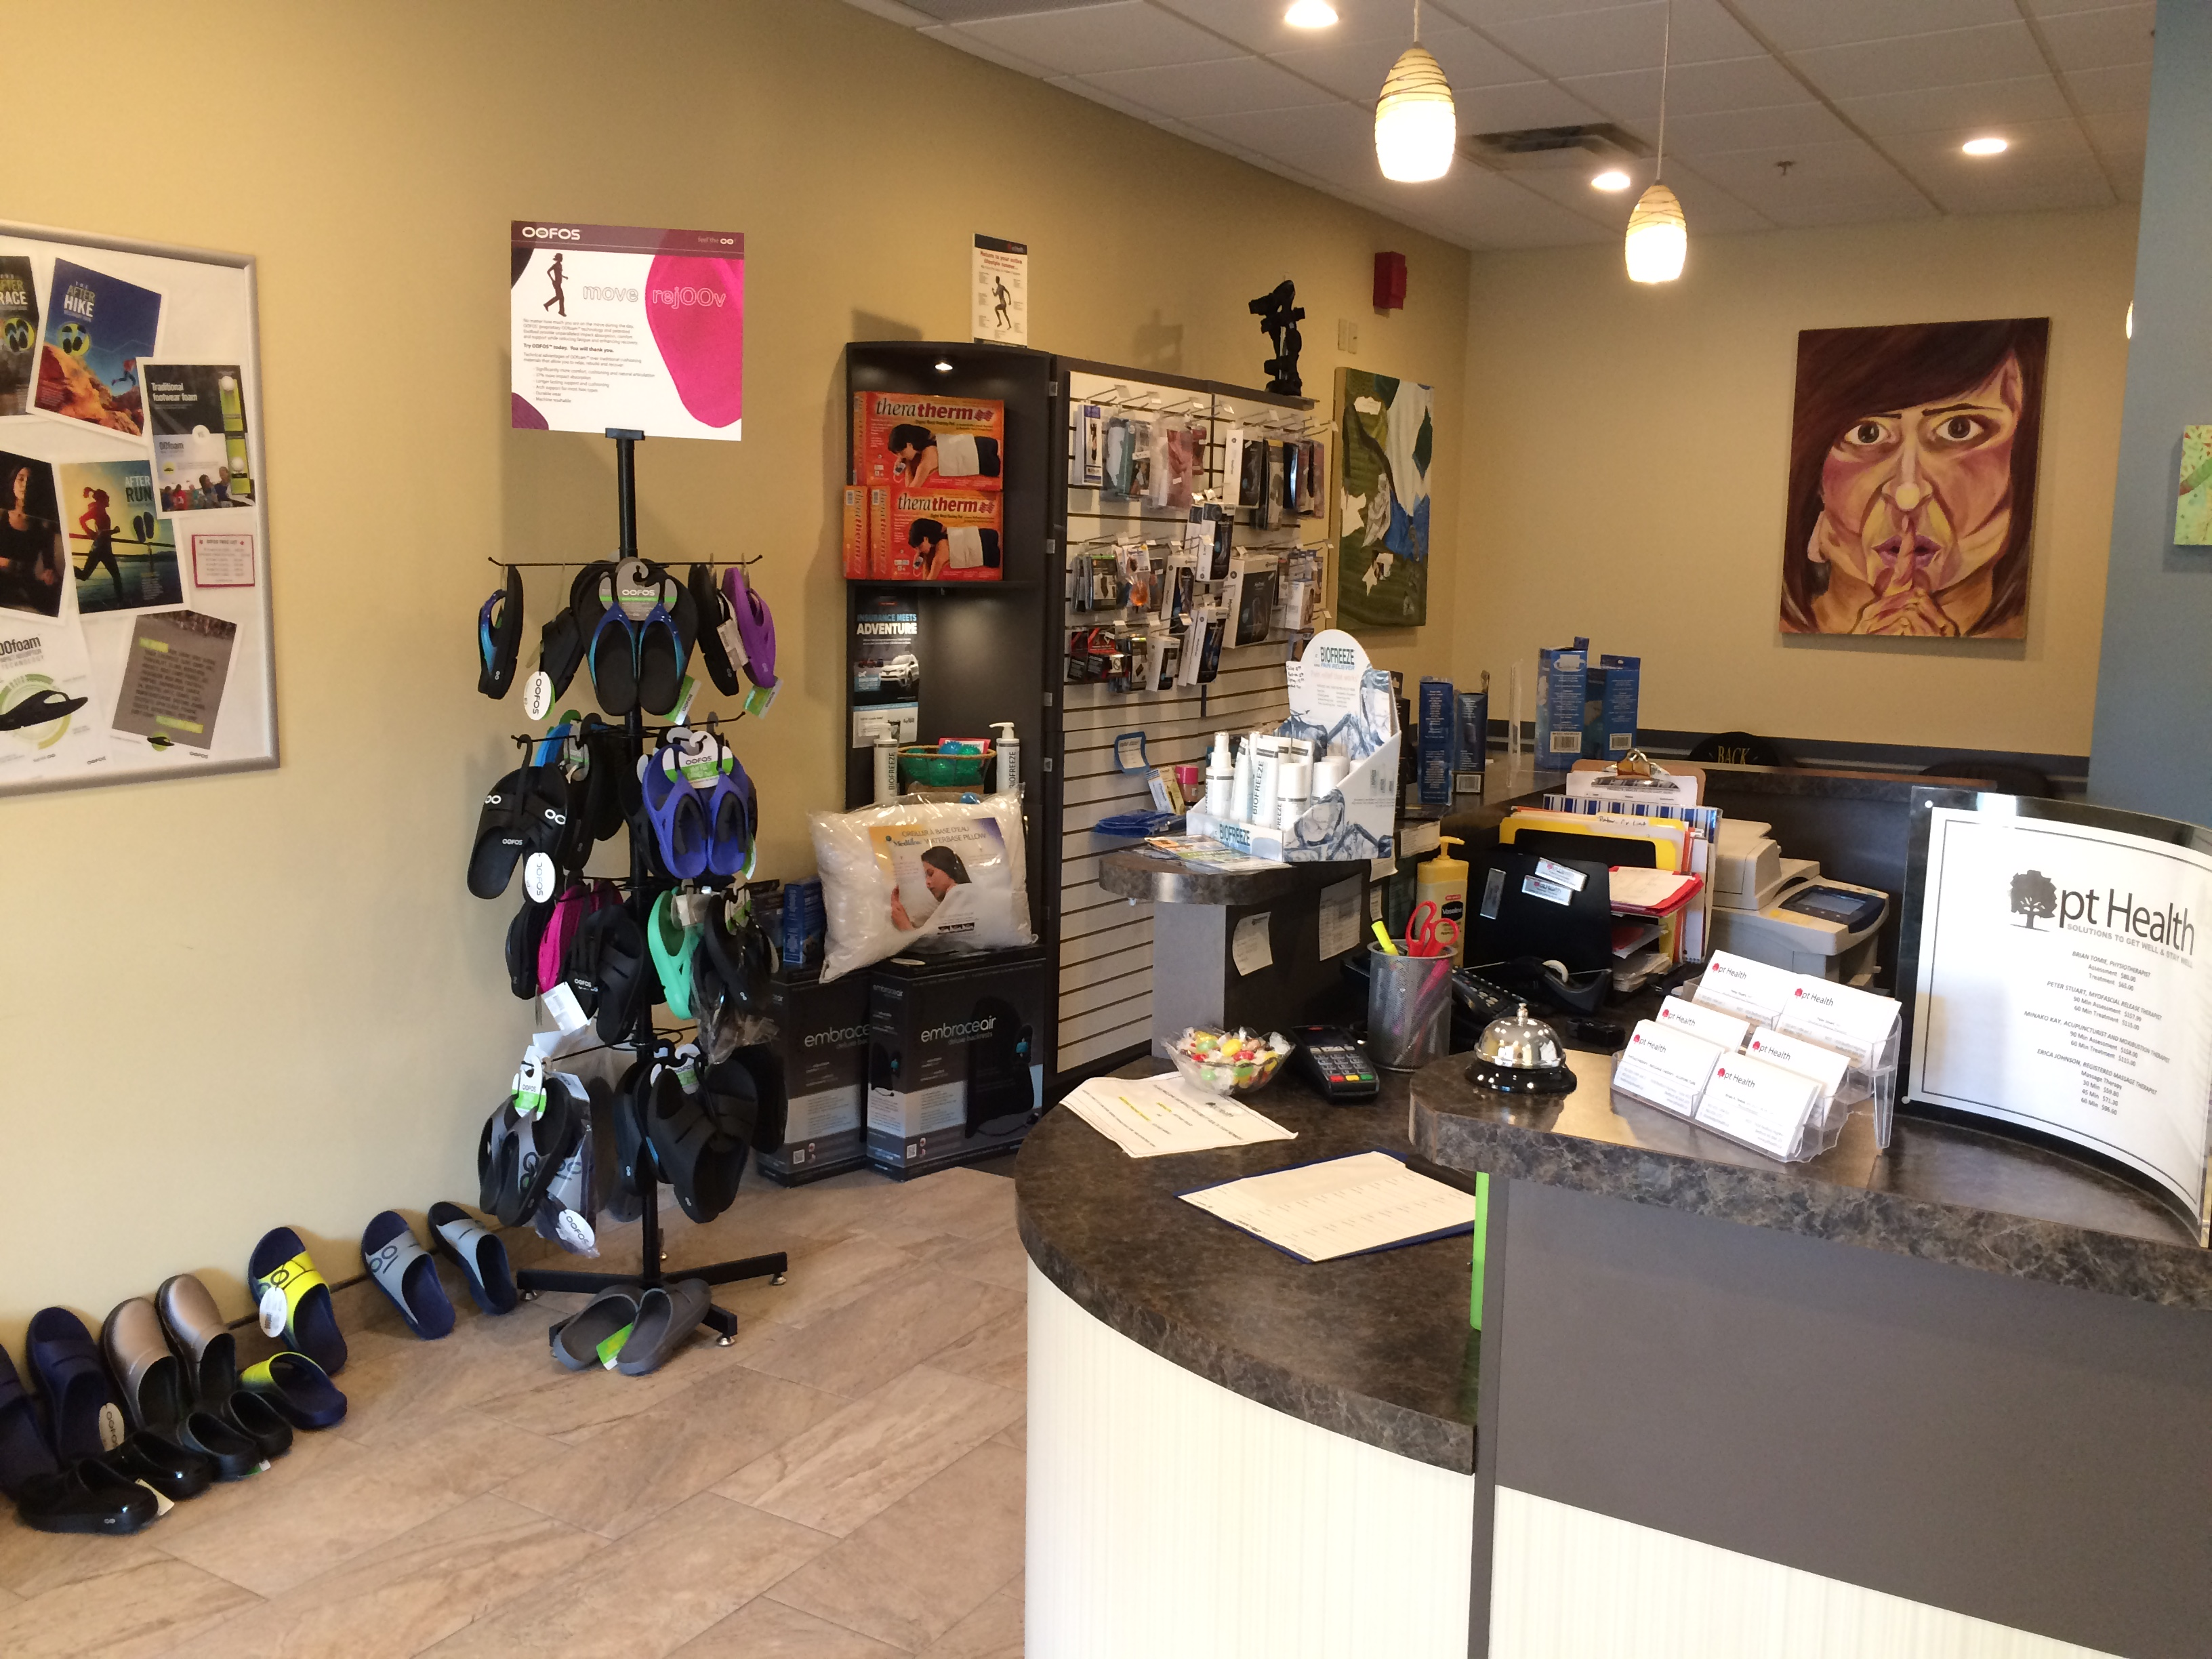 pt Health Physiotherapy - Bedford Place Mall in Bedford, Nova Scotia